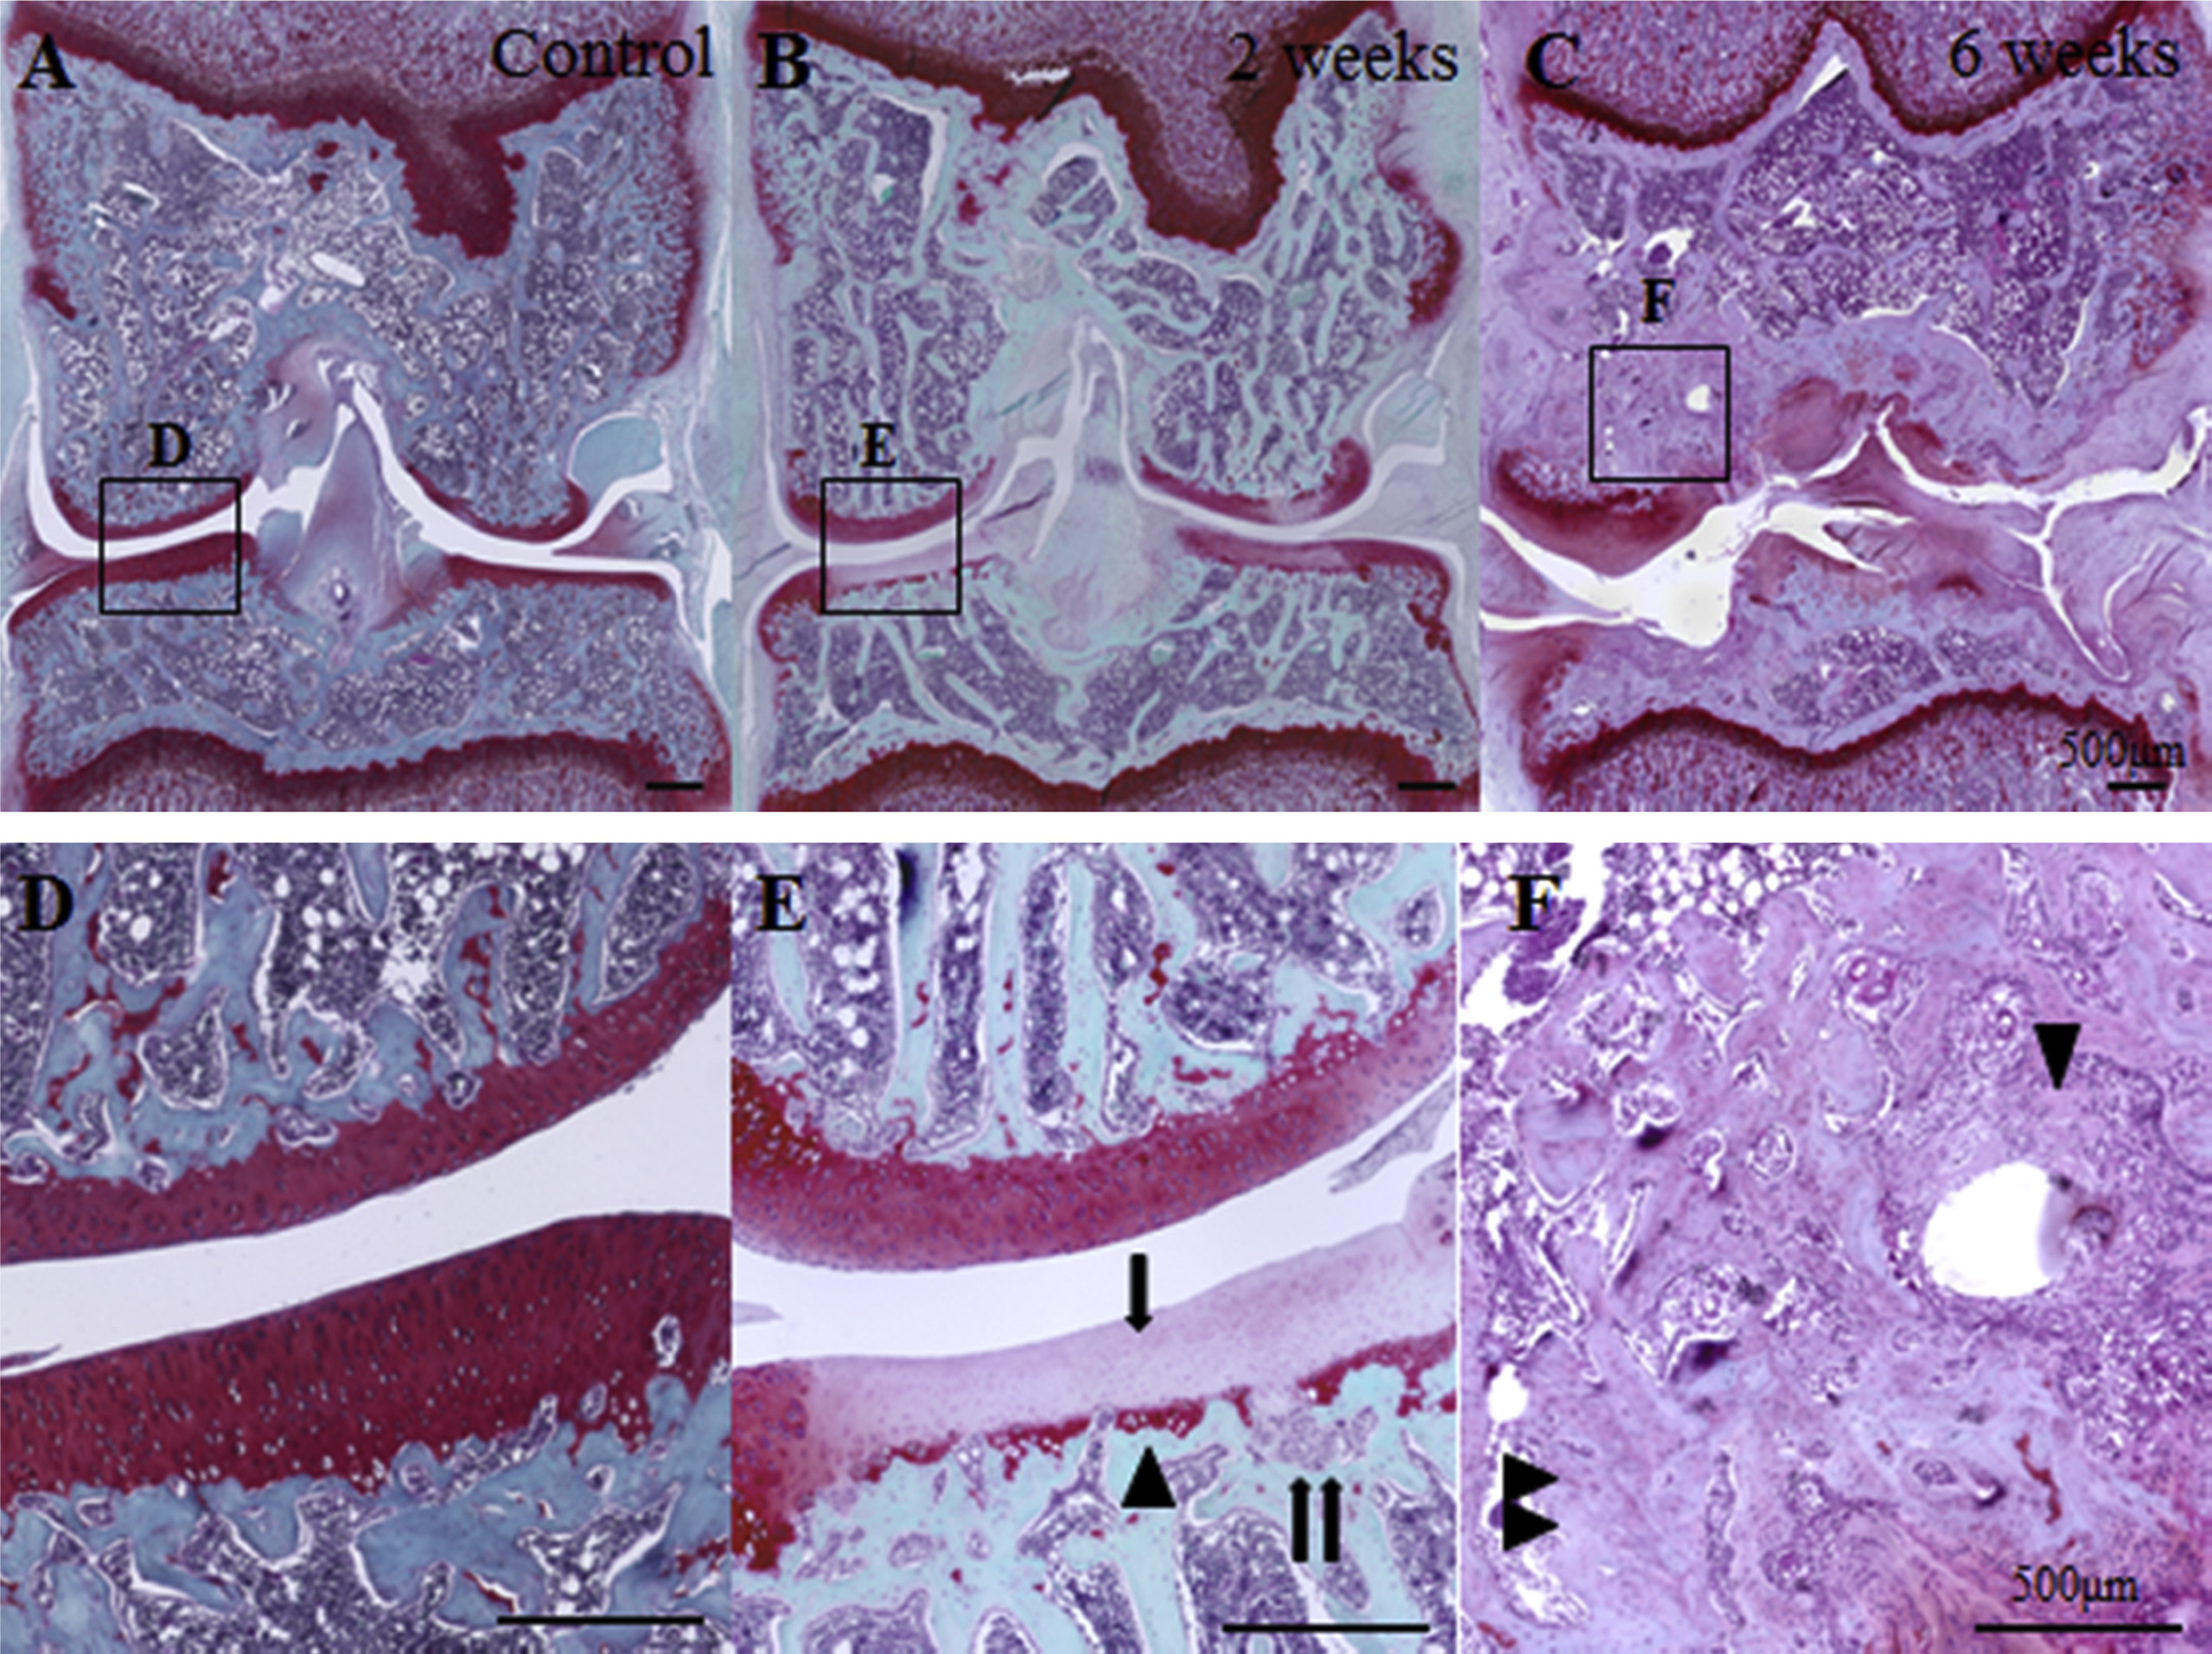 Nociceptive Phenotype Alterations Of Dorsal Root Ganglia